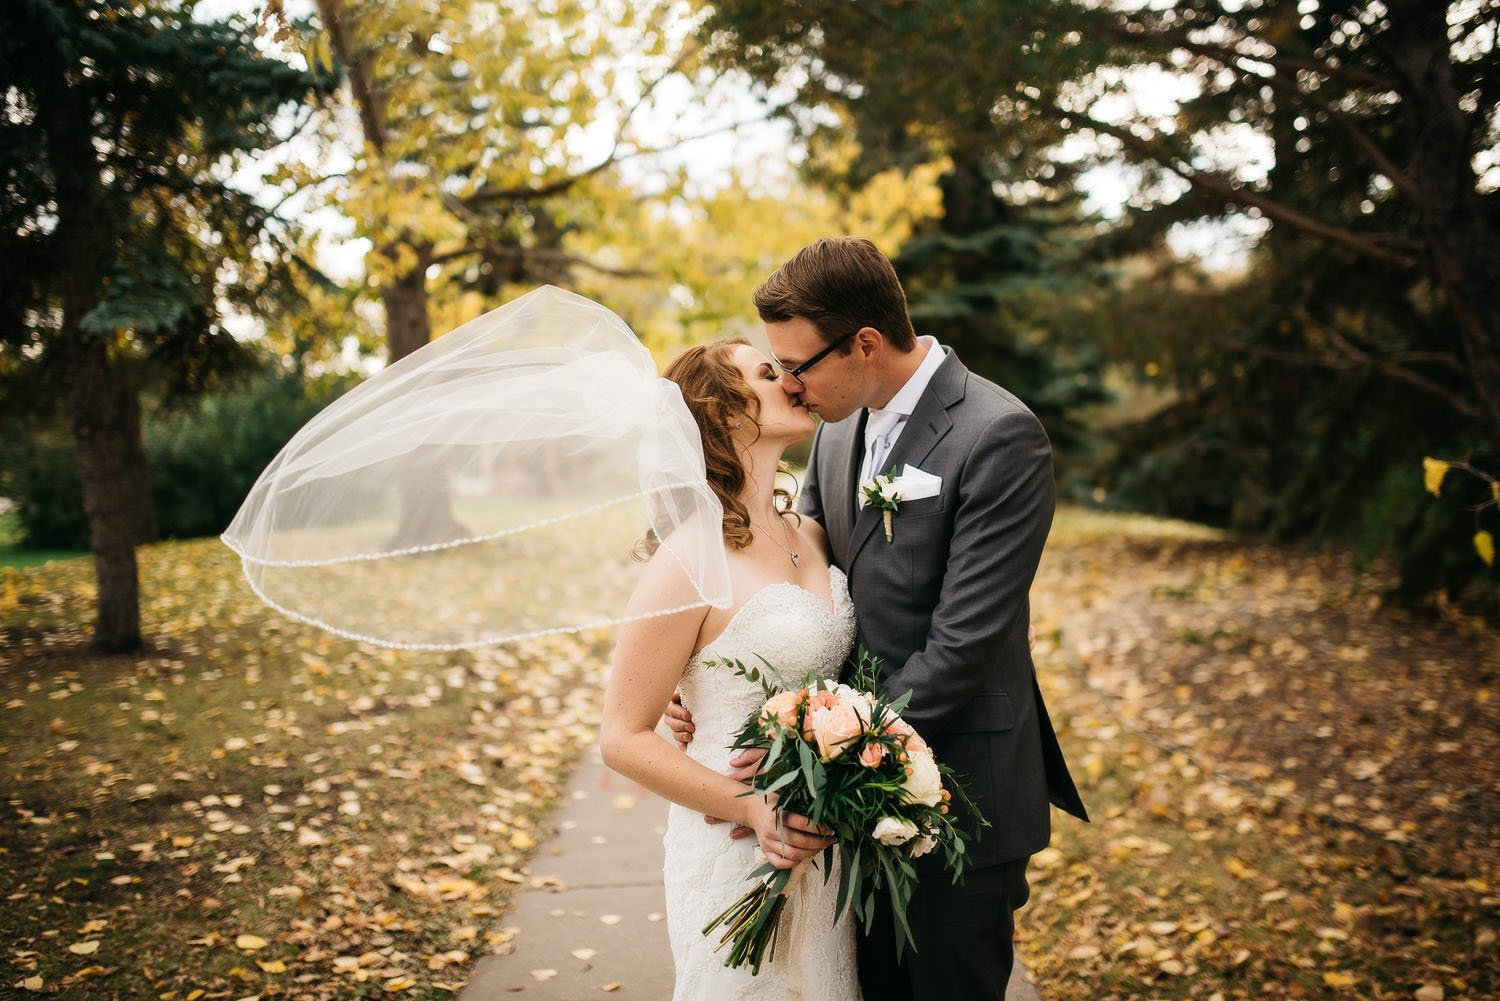 red willow park wedding couple kissing and bride's veil flying with fall colors in the background photo